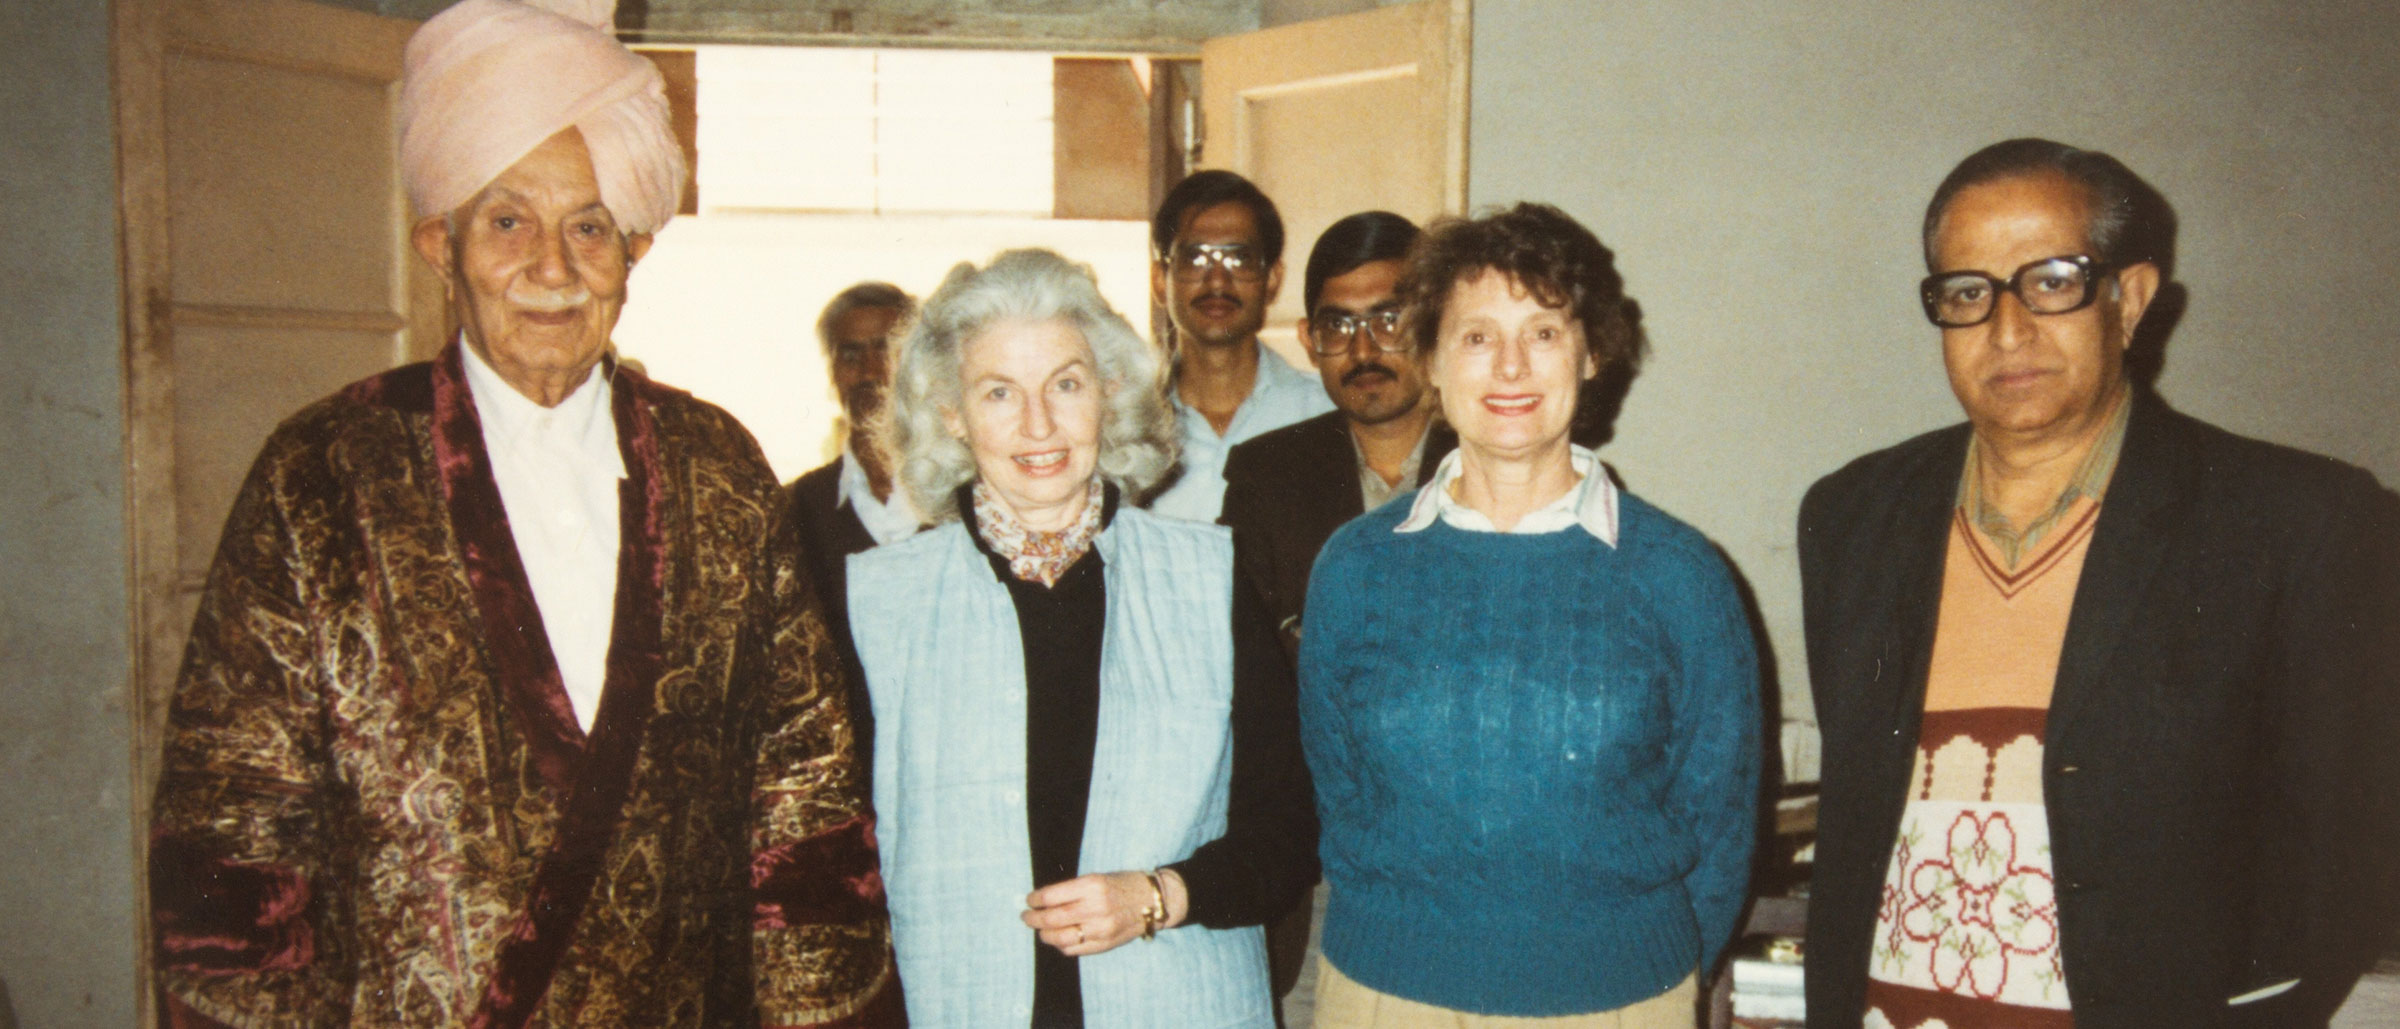 The author posing for a photograph with colleagues.